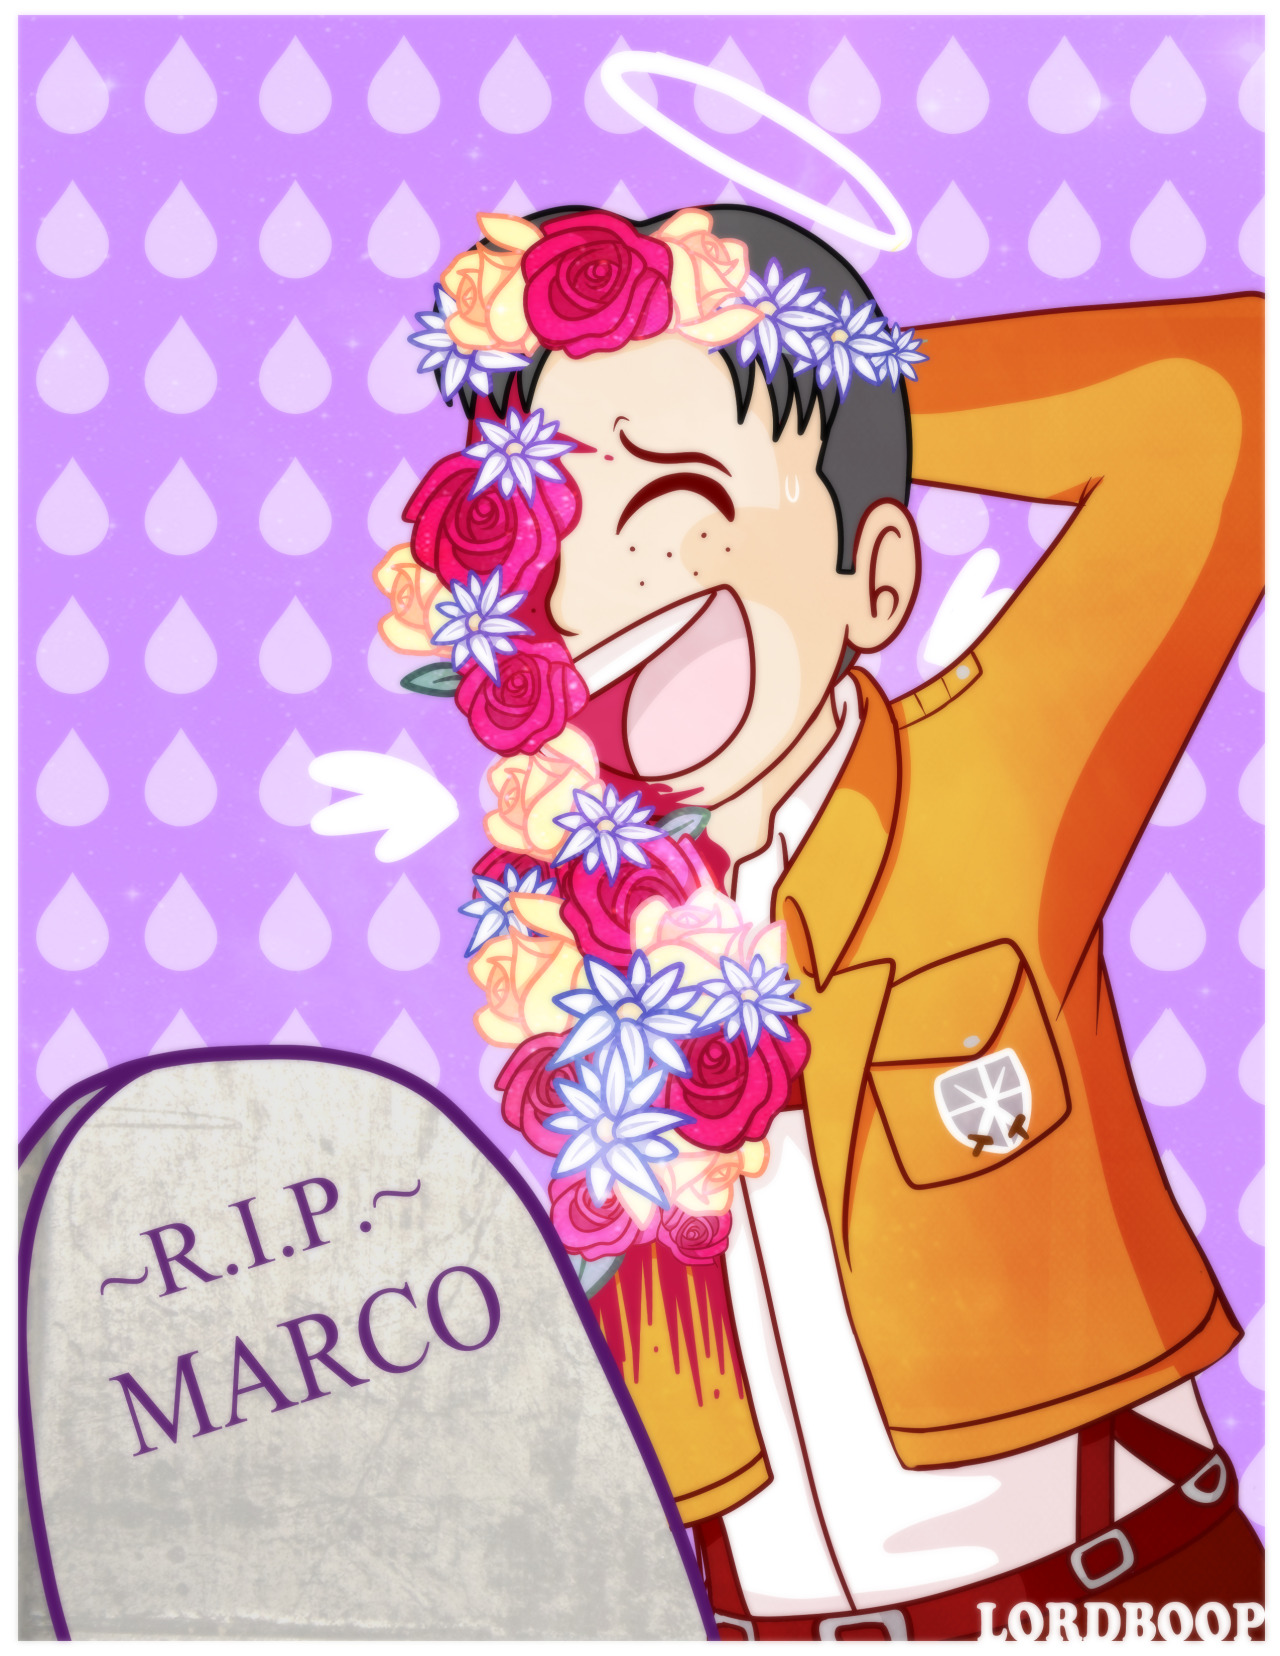 Marco 8.5 X 11 Print · Boop Your Soul · Online Store Powered by Storenvy